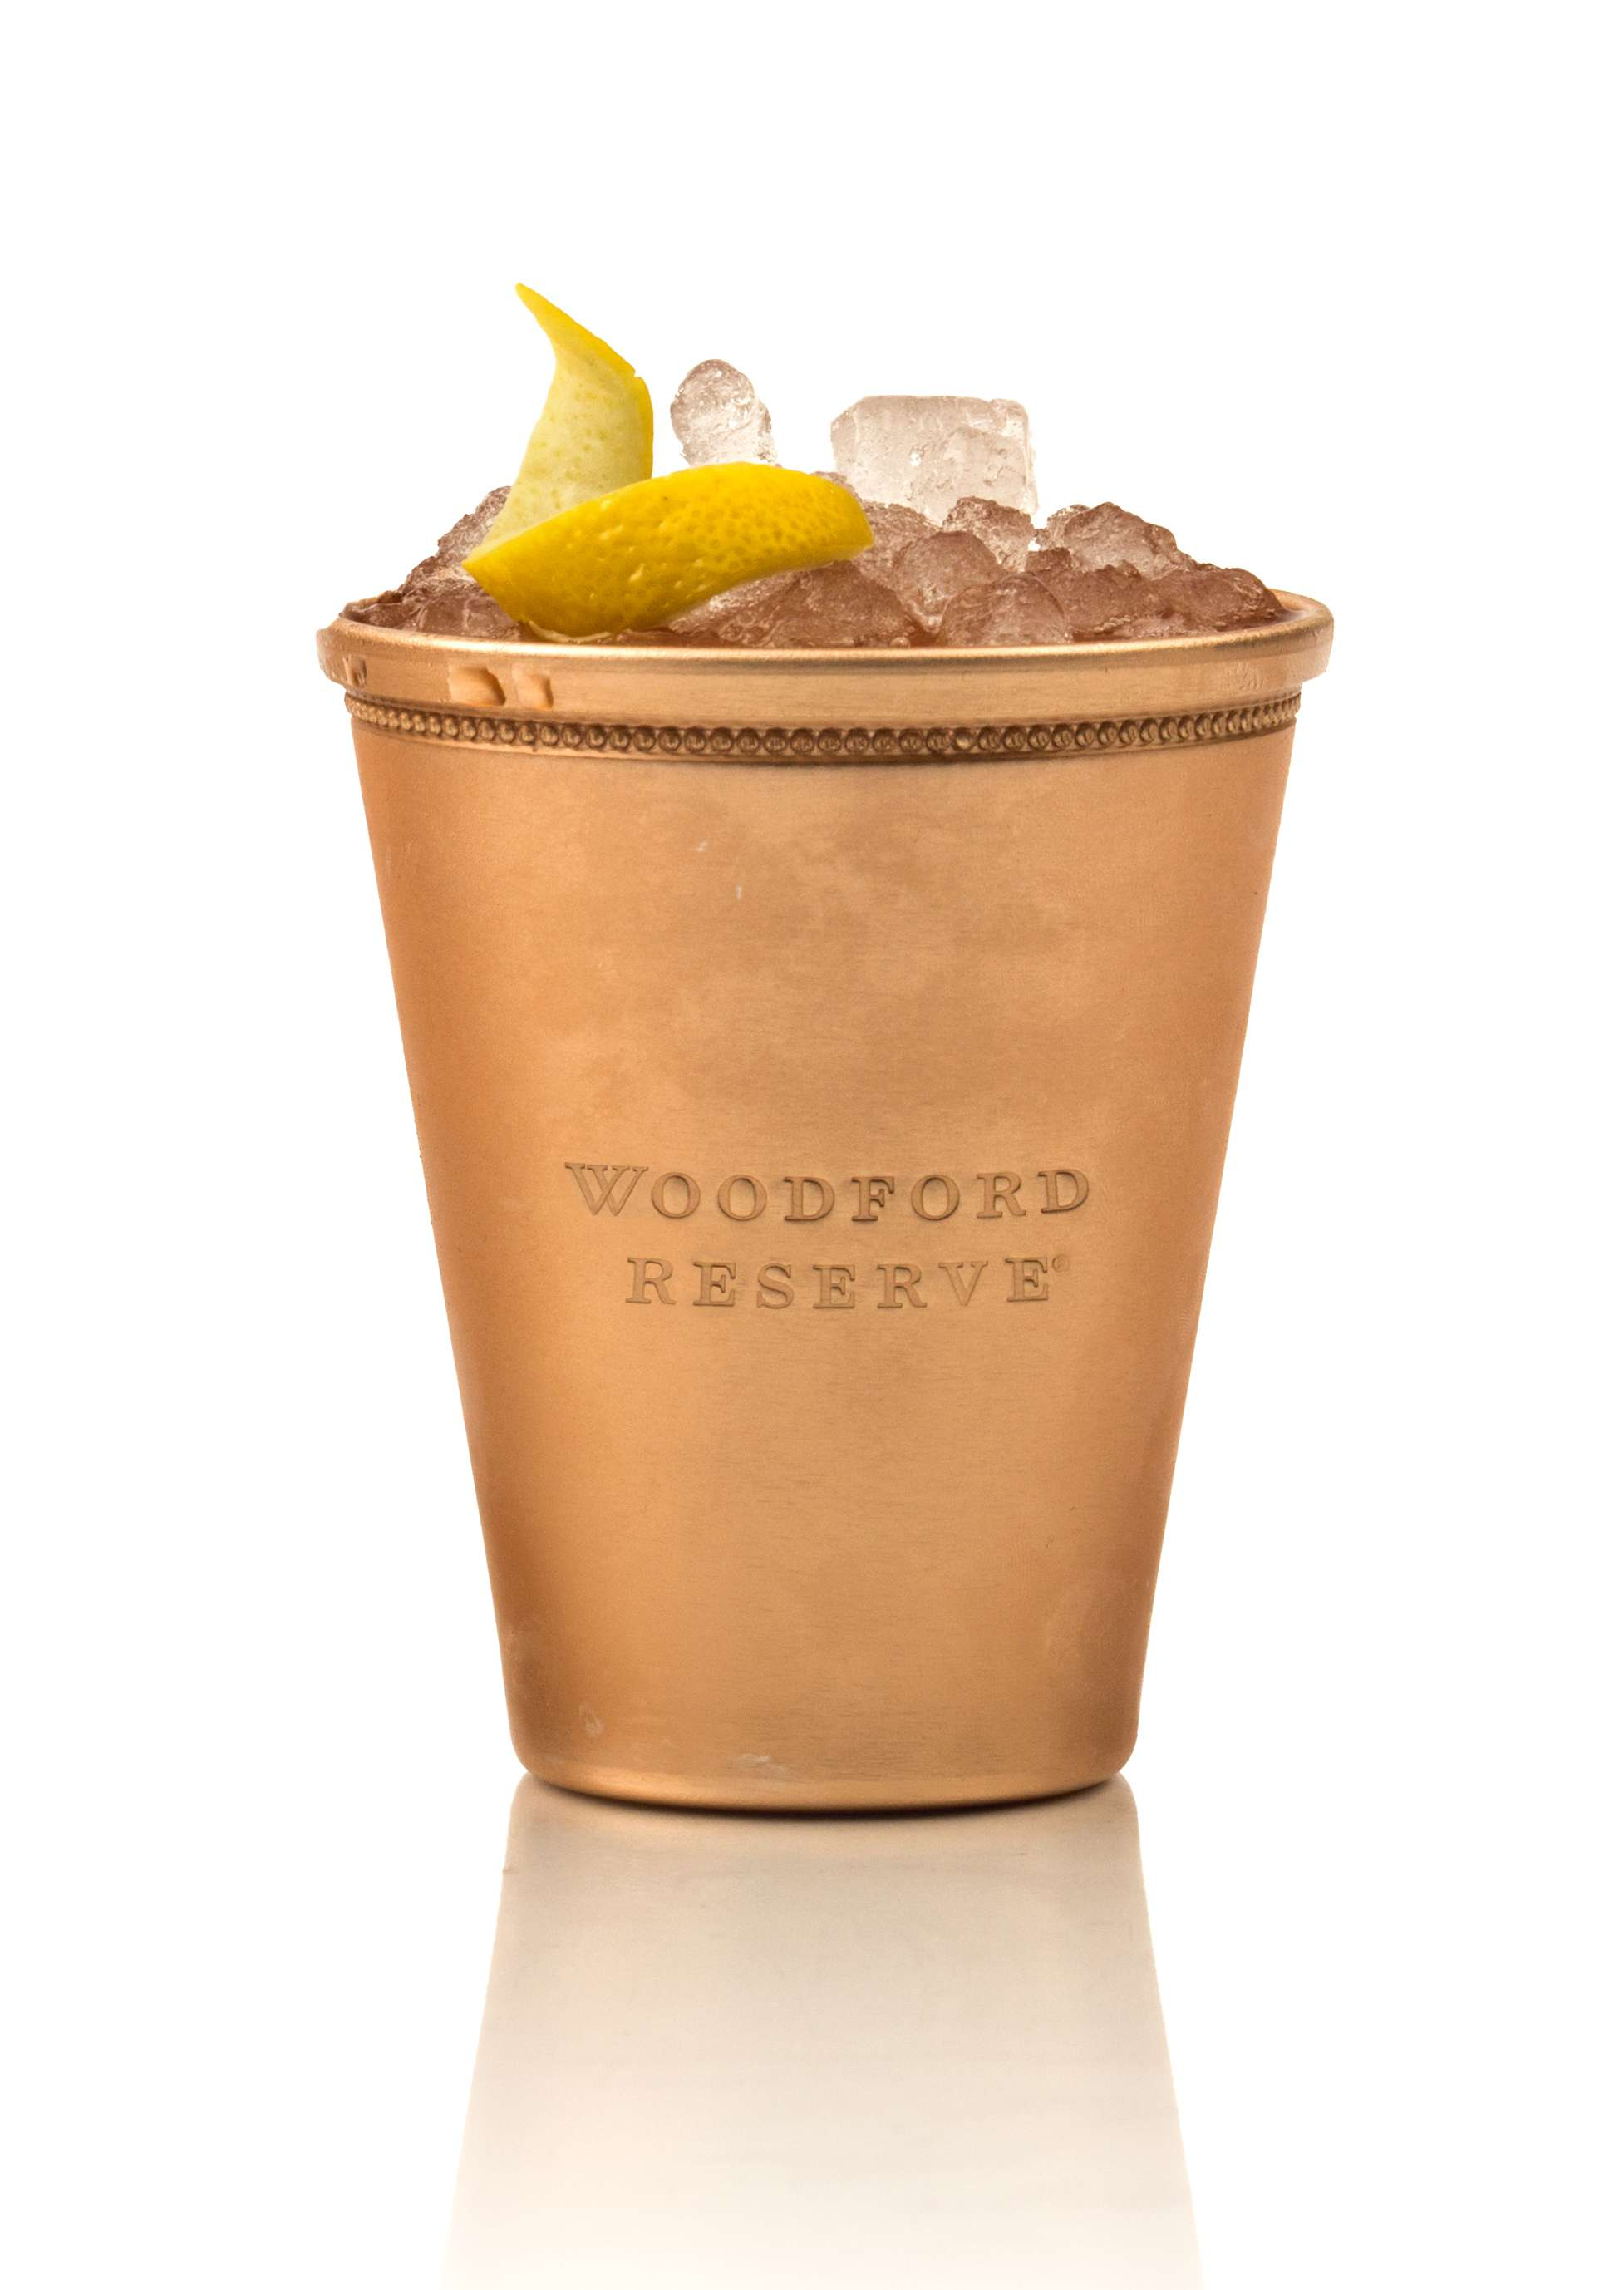 alcohol, signature cocktail, drink, glass, ice, beverage, bar, mule, ice, cooper cup mug